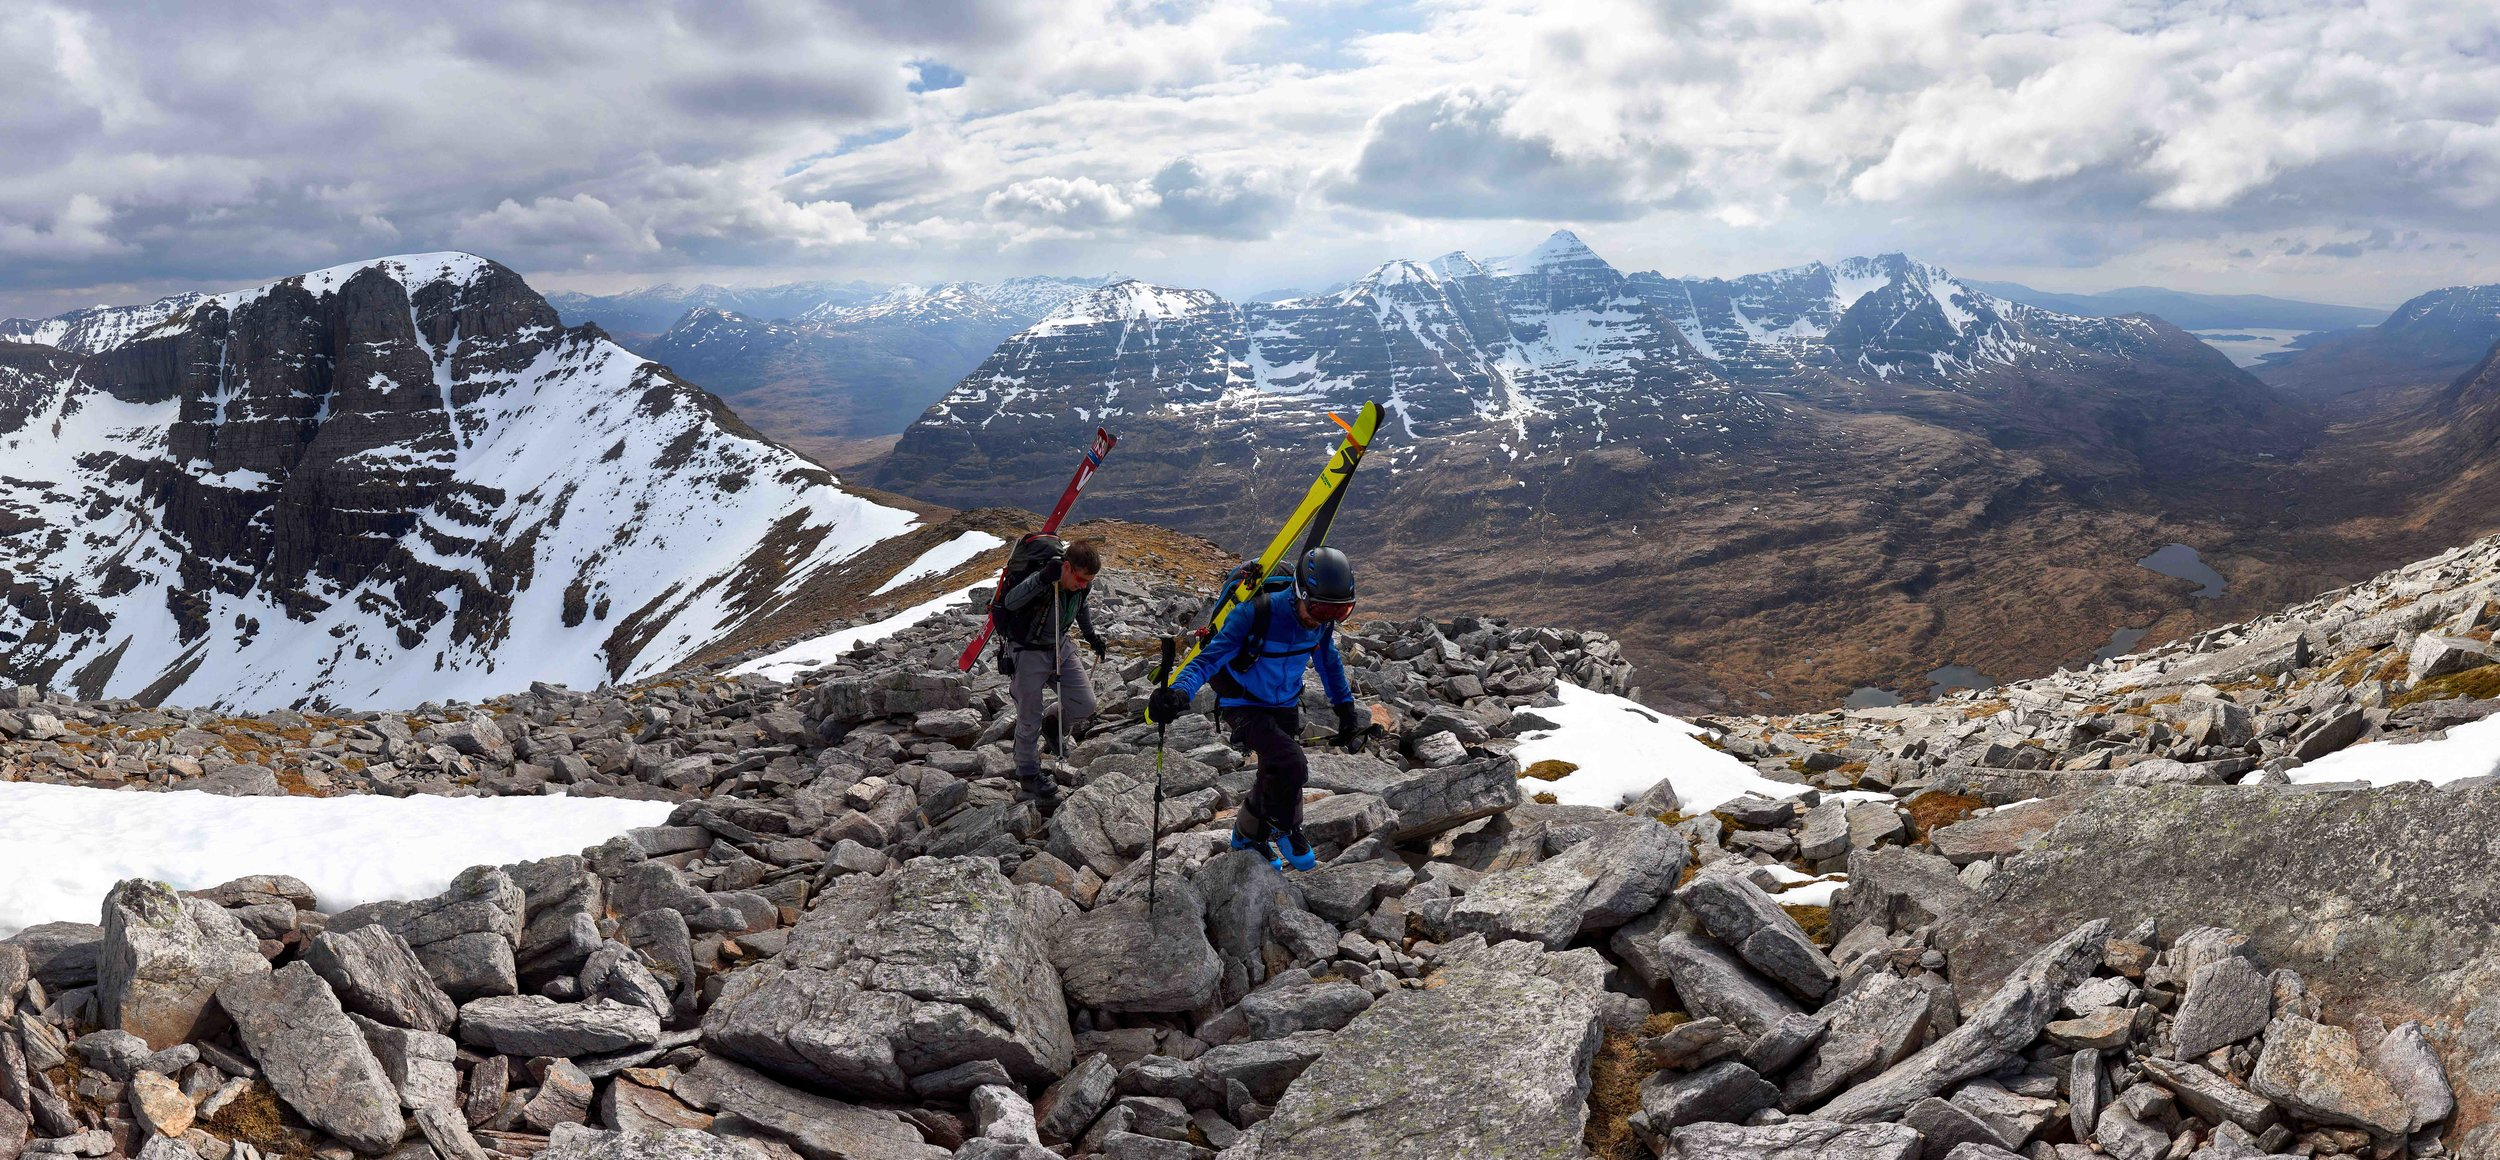 Hiking towards Sail Mhor and Morrisons Gully, with views of Beinn Eighe's Triple Buttress, Fuselage Gully (the complete line running down the lookers right side of the buttress) and Liathach stretched out behind.